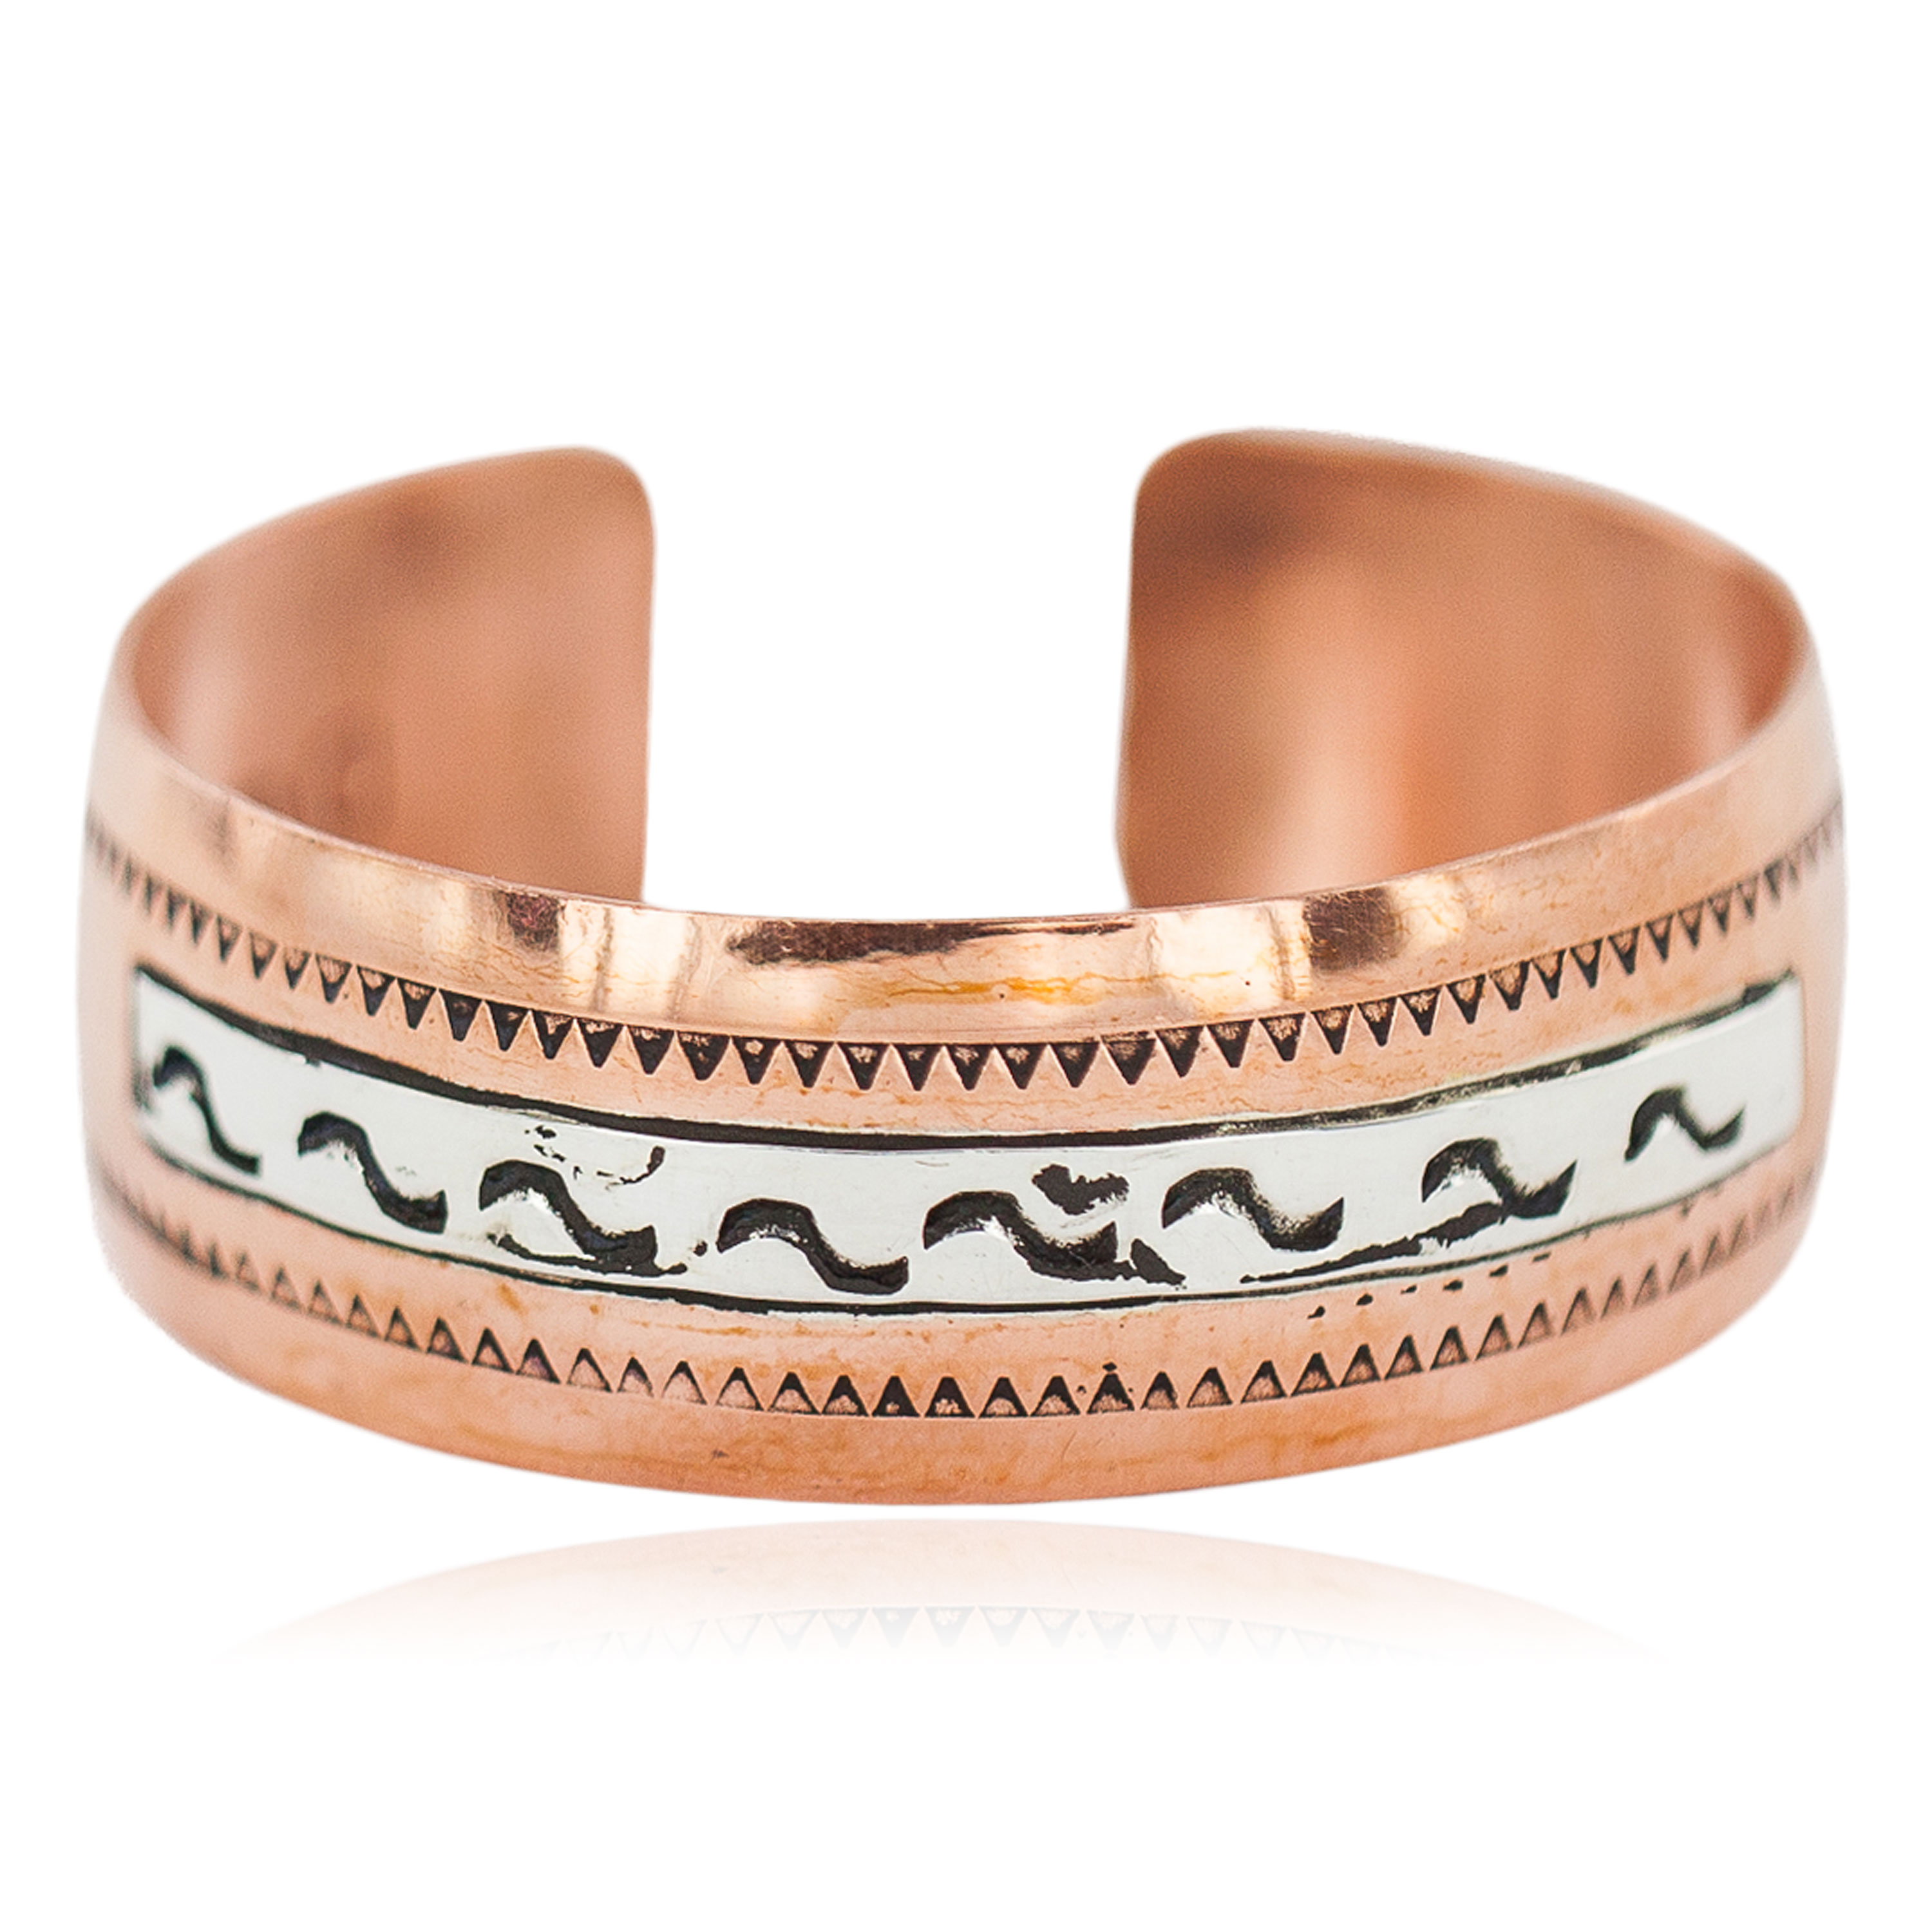 Certified Authentic Feather Navajo .925 Sterling Silver Handmade Native American Pure Copper Bracelet 92005-19 All Products NB160222204847 92005-19 (by LomaSiiva)